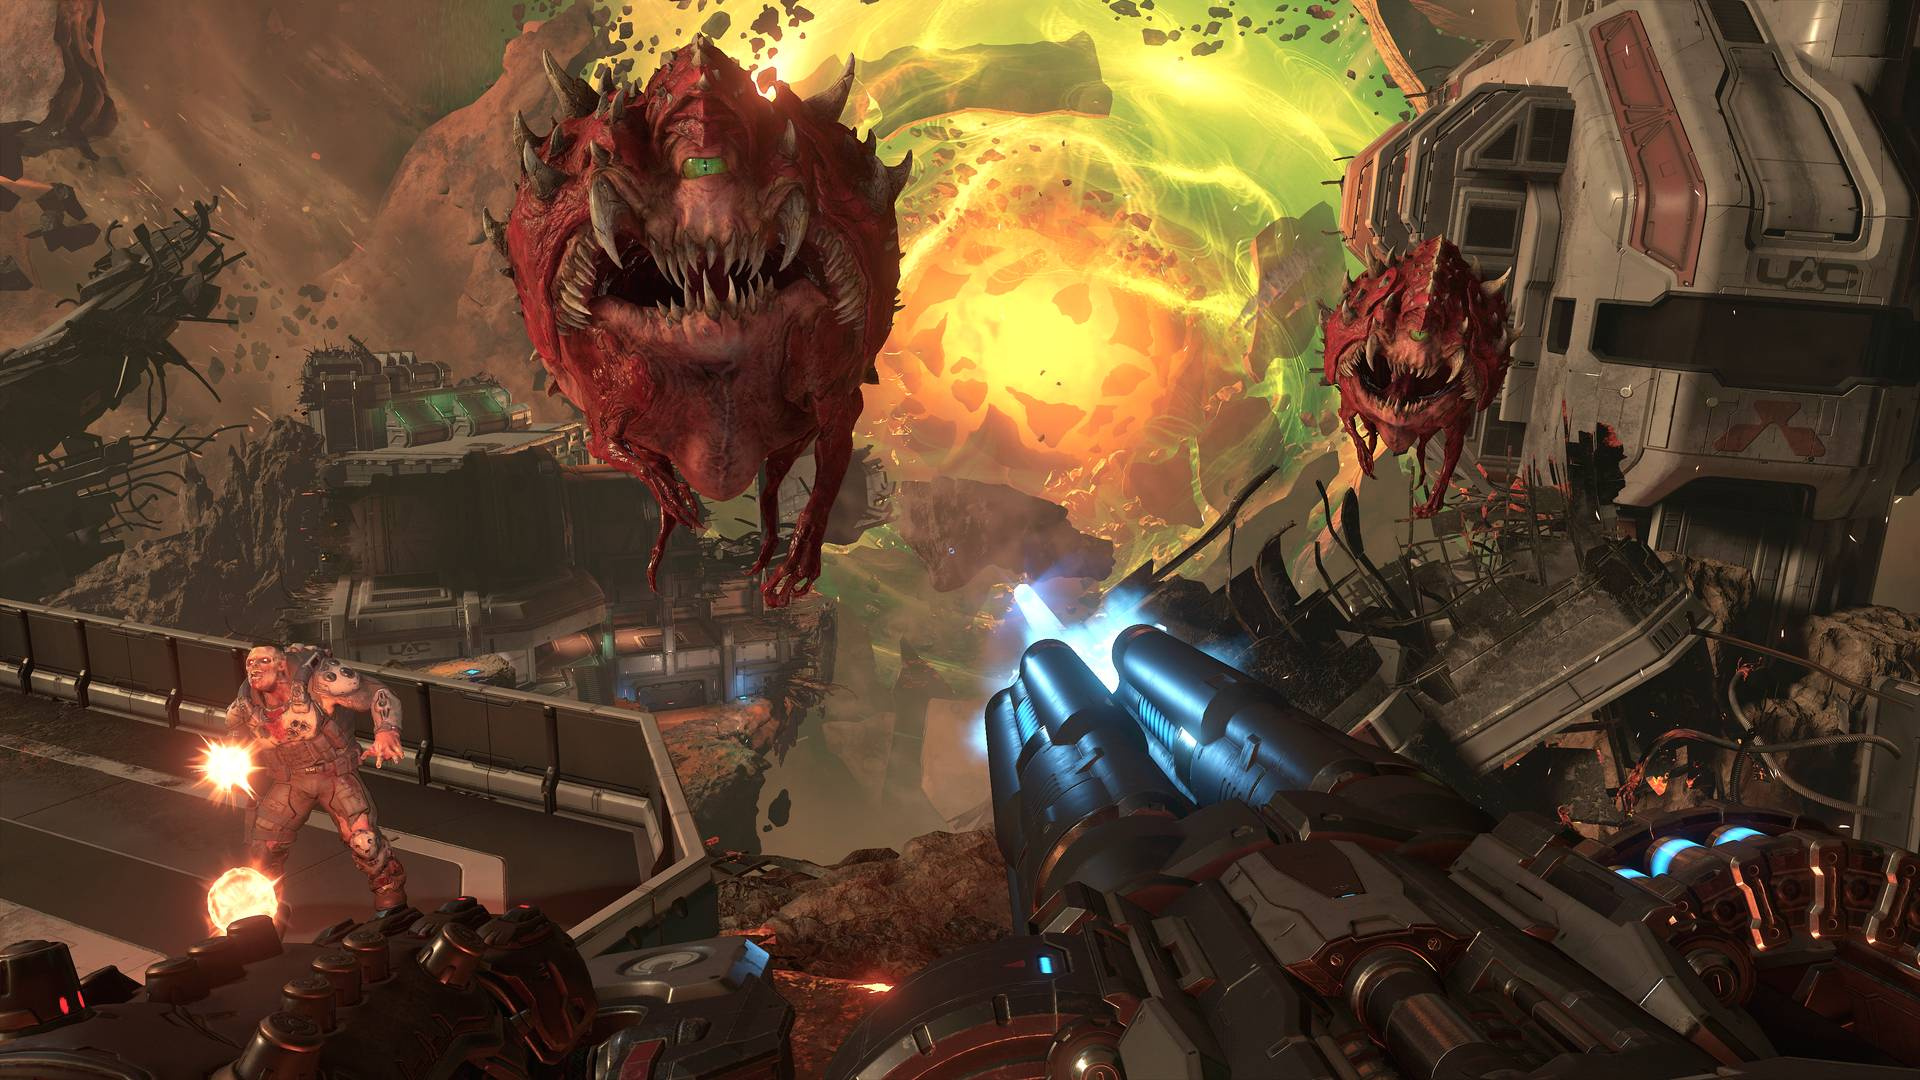 DOOM Eternal Is Pushing the PS4 Hardware to Its Limit